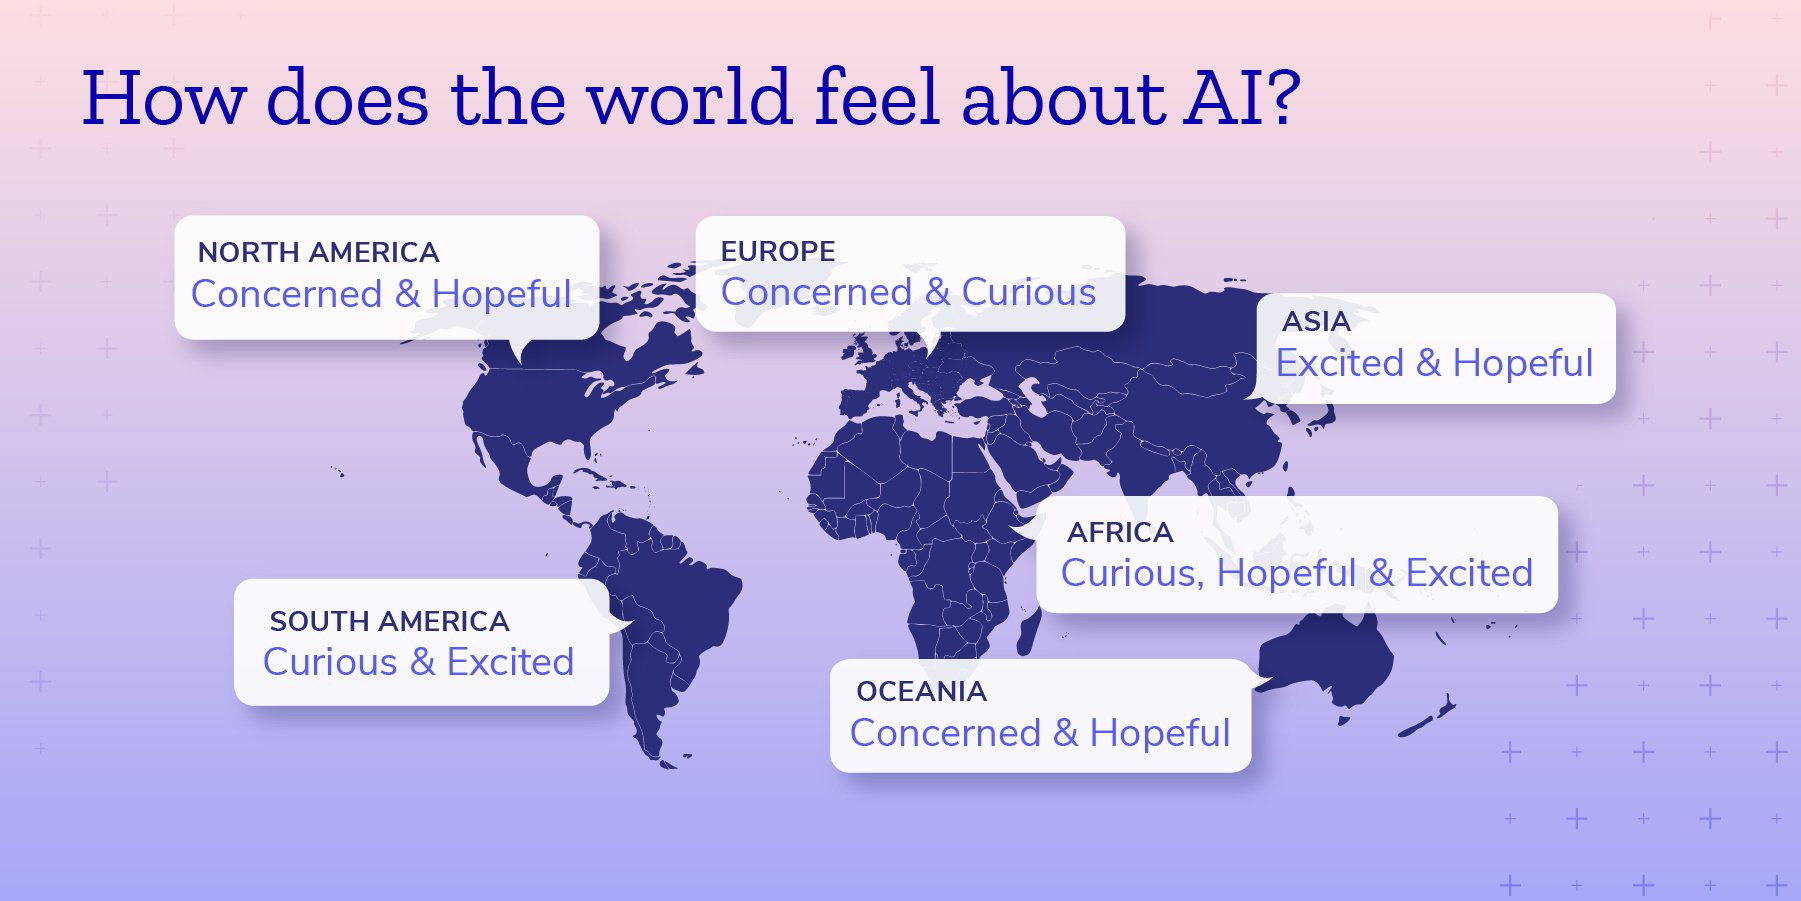 How does the world feel about AI?